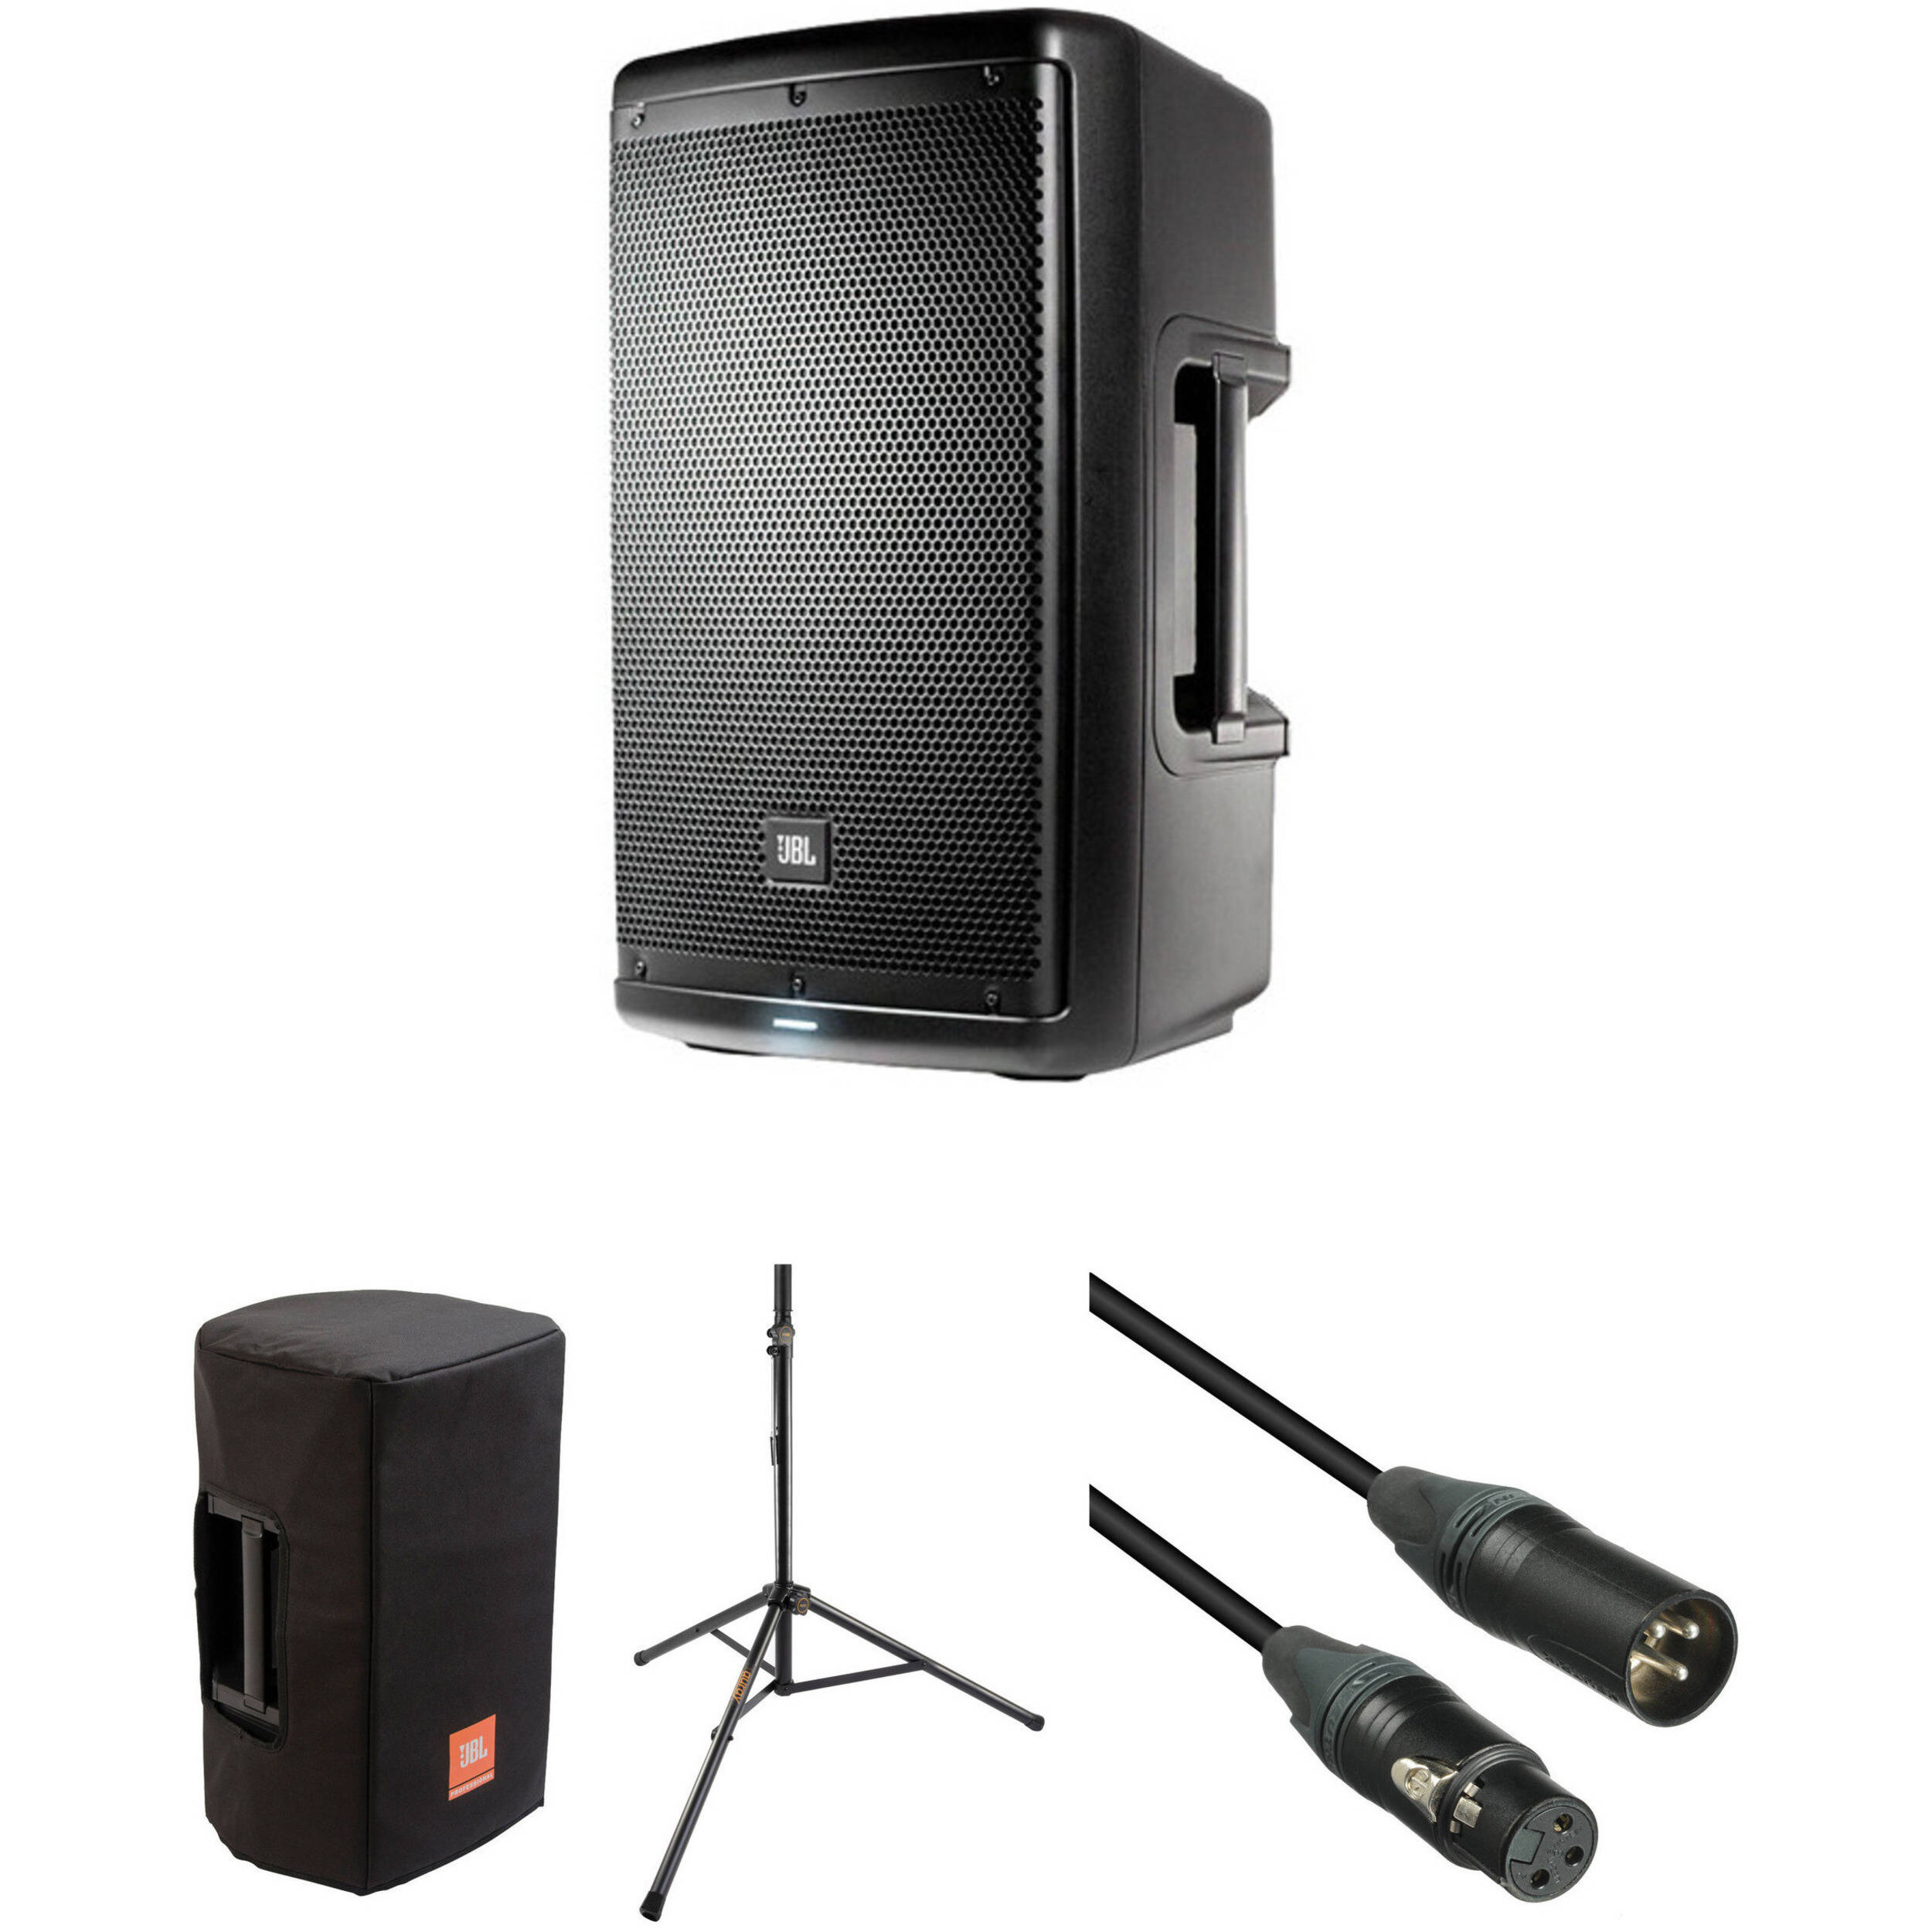 jbl eon610 10 powered speaker with speaker stand. Black Bedroom Furniture Sets. Home Design Ideas